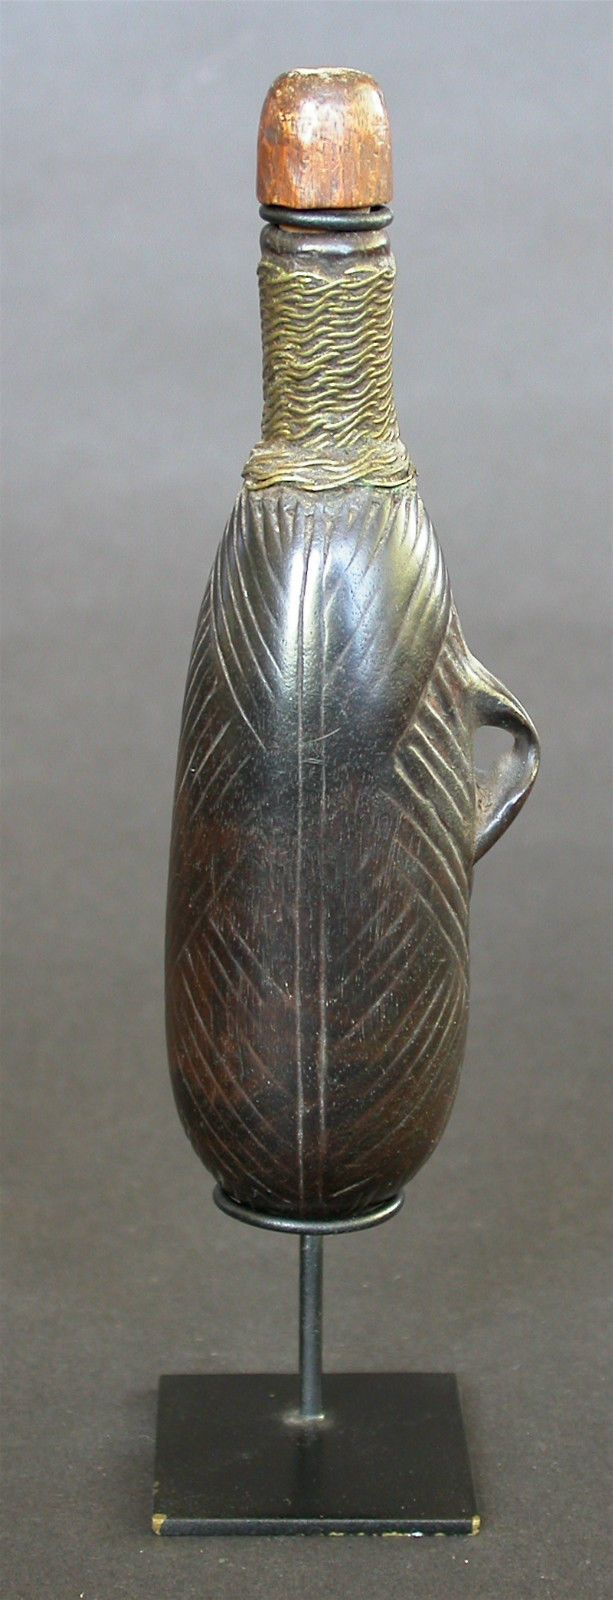 A Fine Antique 19th C Shona Tsonga Snuff Bottle Mozambique Africa with Stopper | eBay